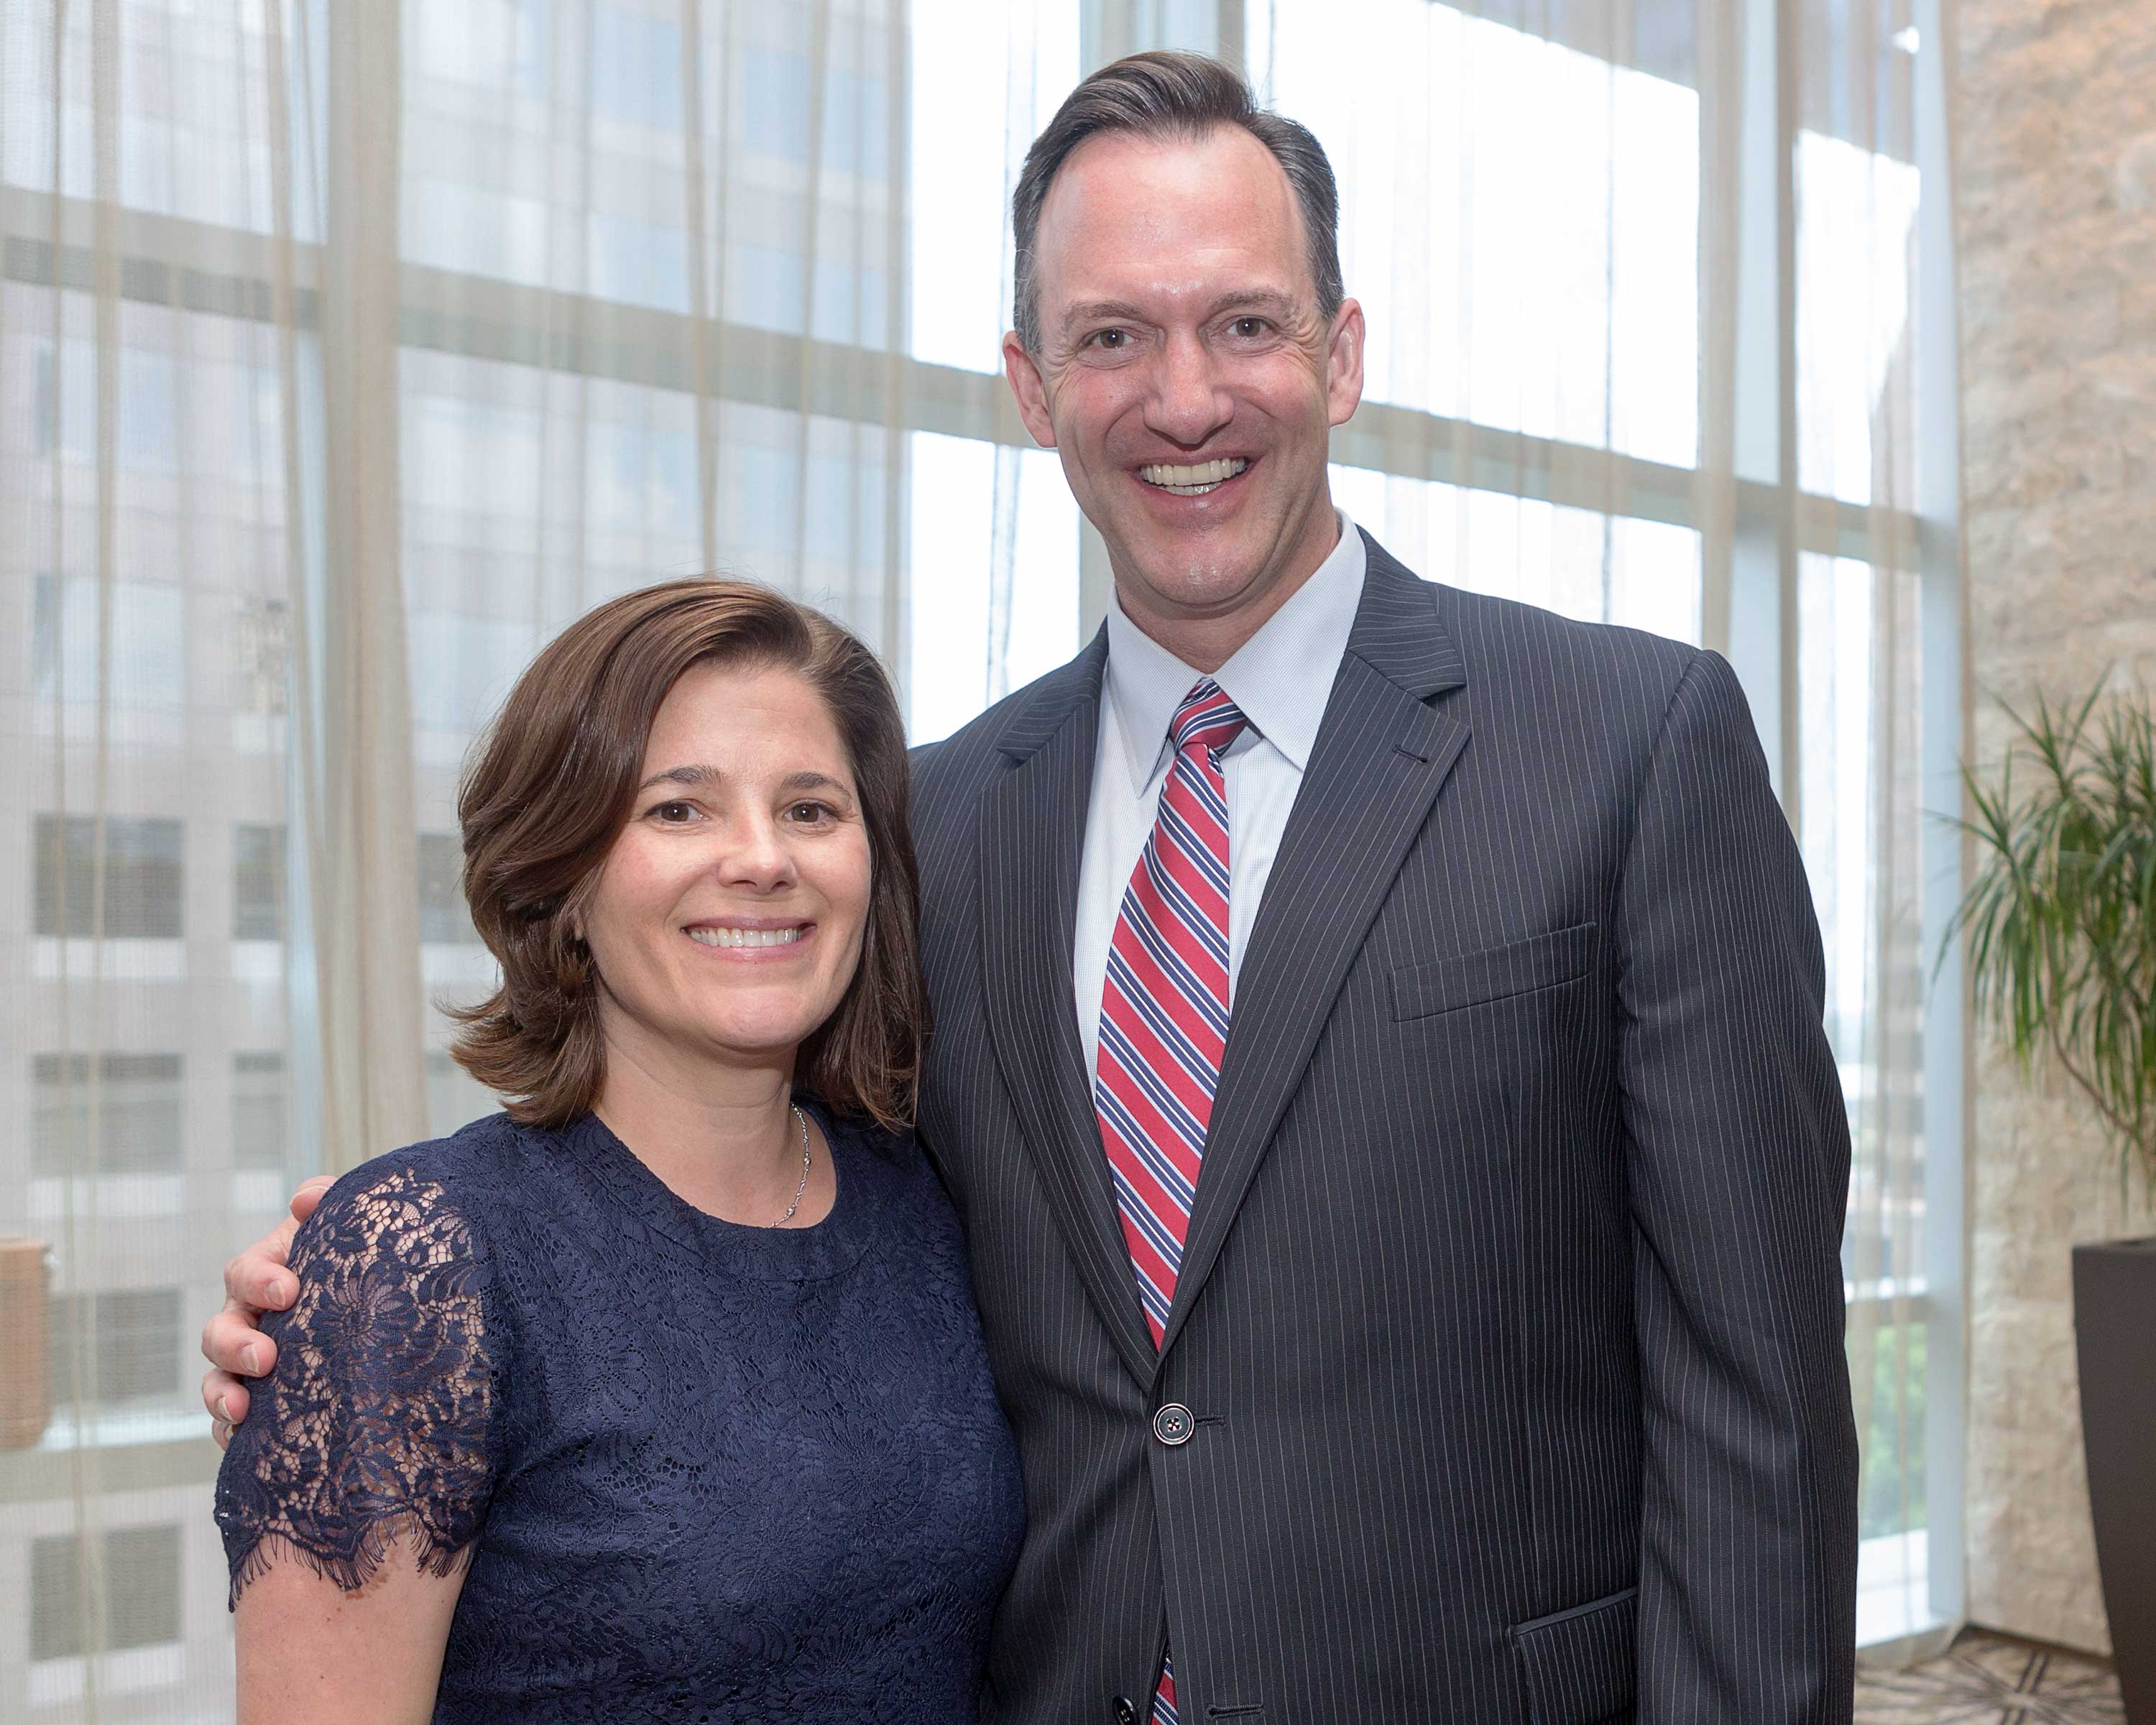 Thresa and Mike Nasi at the 2017 DTMG Luncheon